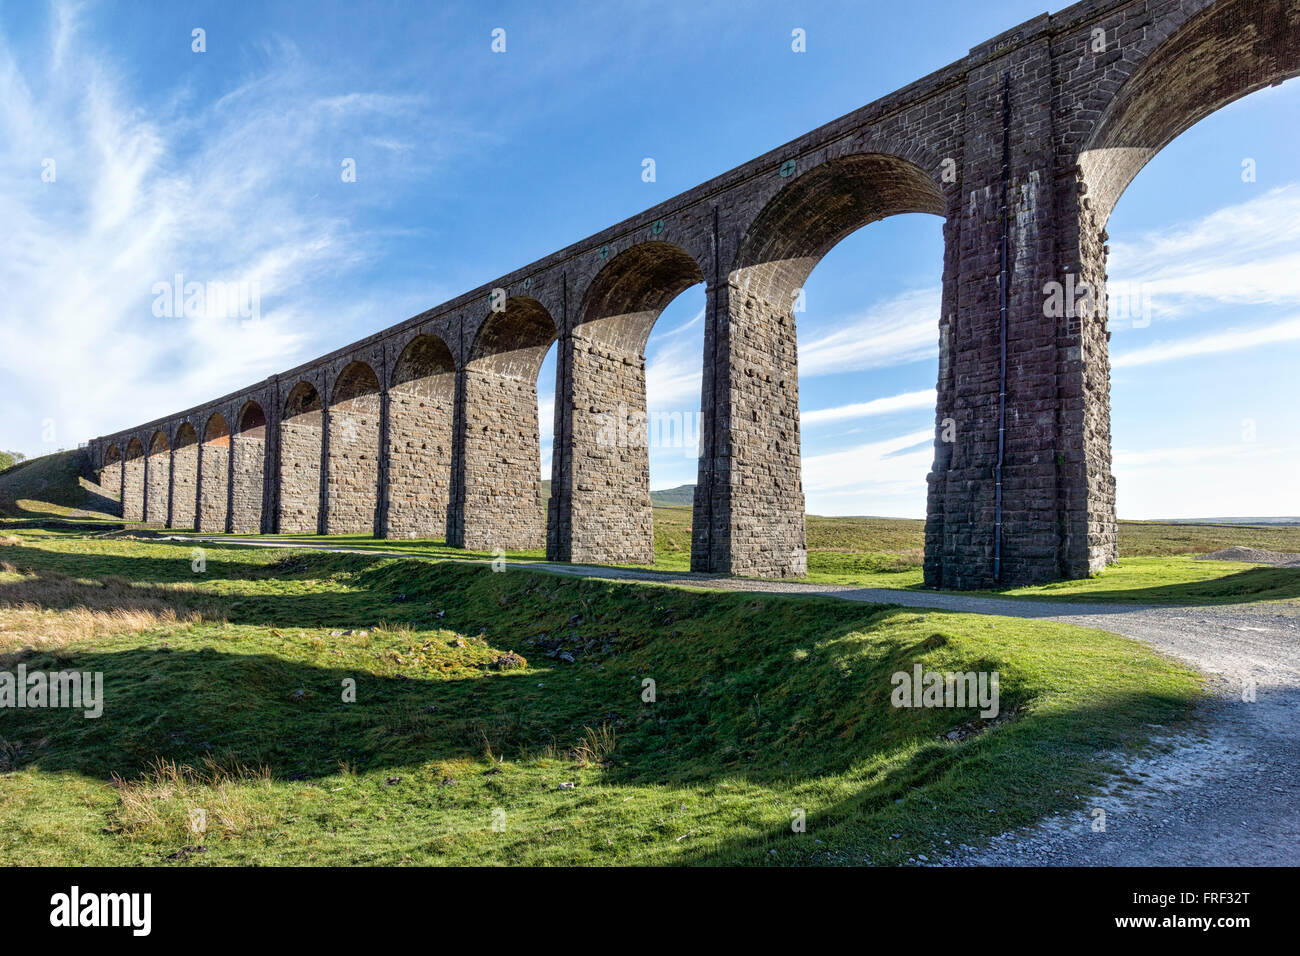 Still in use and recently renovated. The Ribblehead Viaduct or Batty Moss Viaduct carries the Settle-Carlisle Railway - Stock Image